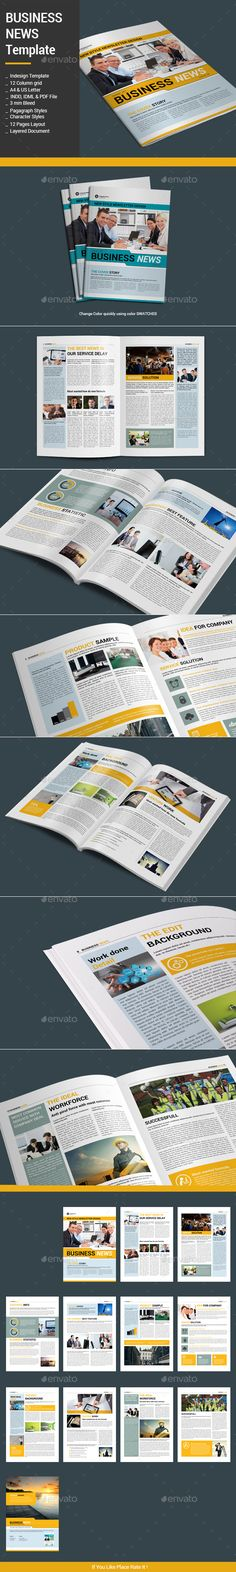 Business News Template InDesign INDD #design Download: http://graphicriver.net/item/business-news-template/13244814?ref=ksioks